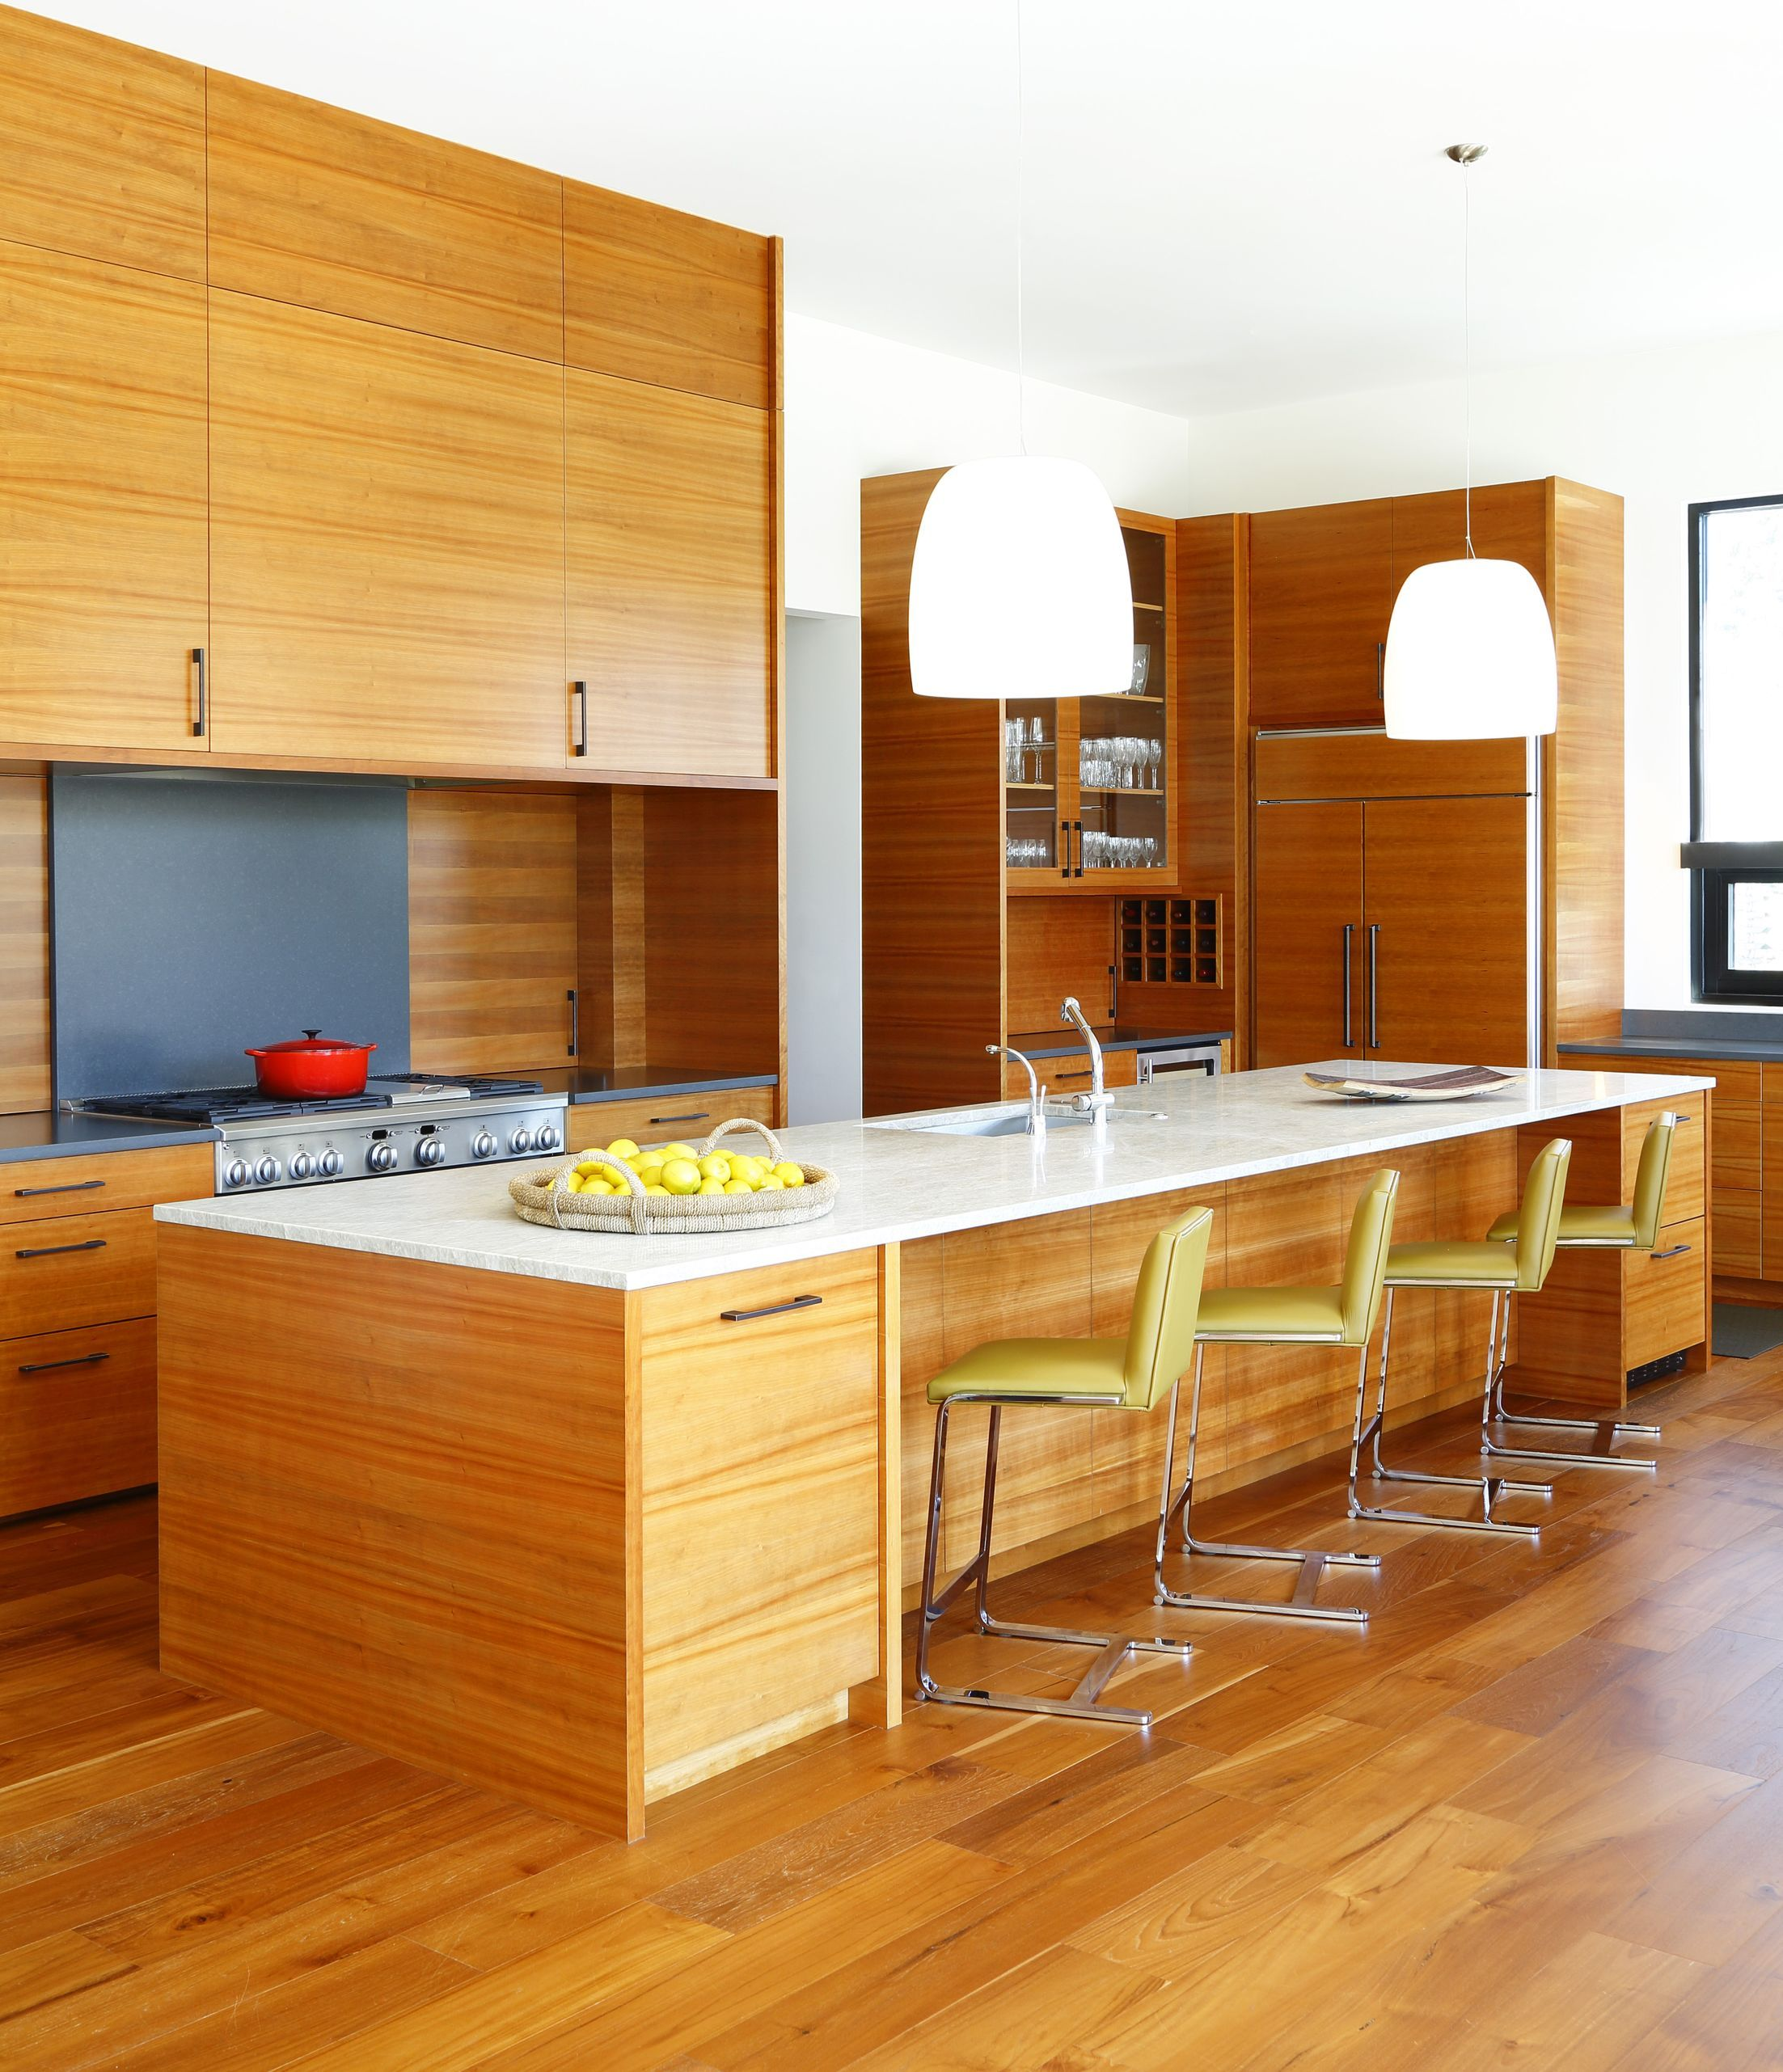 Kitchen Island Inspiration: Love This Wood & White Contemporary Kitchen Island! Images